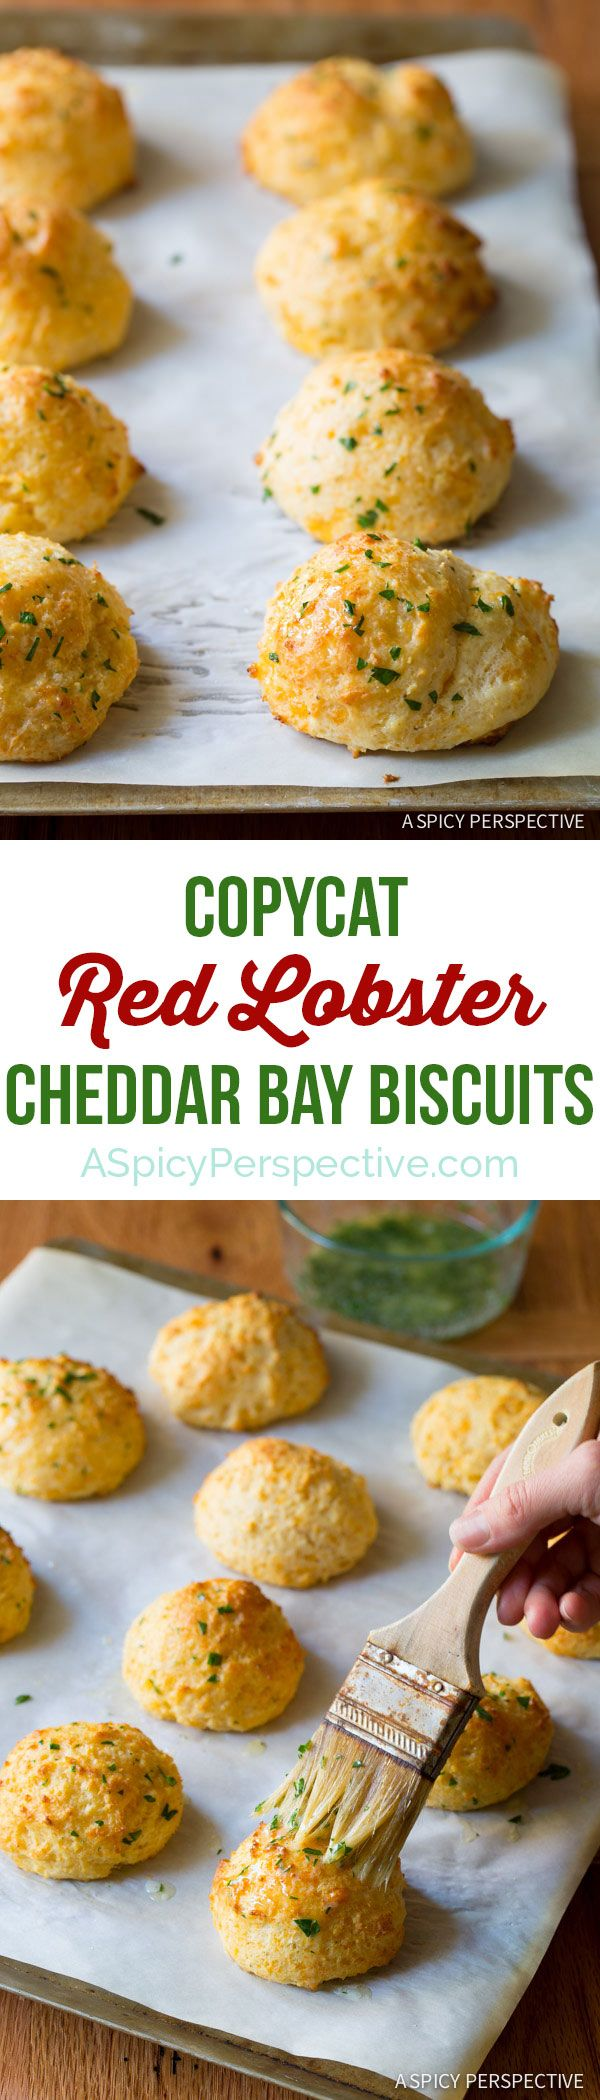 Better Than Red Lobster Cheddar Bay Biscuits on ASpicyPerspective.com